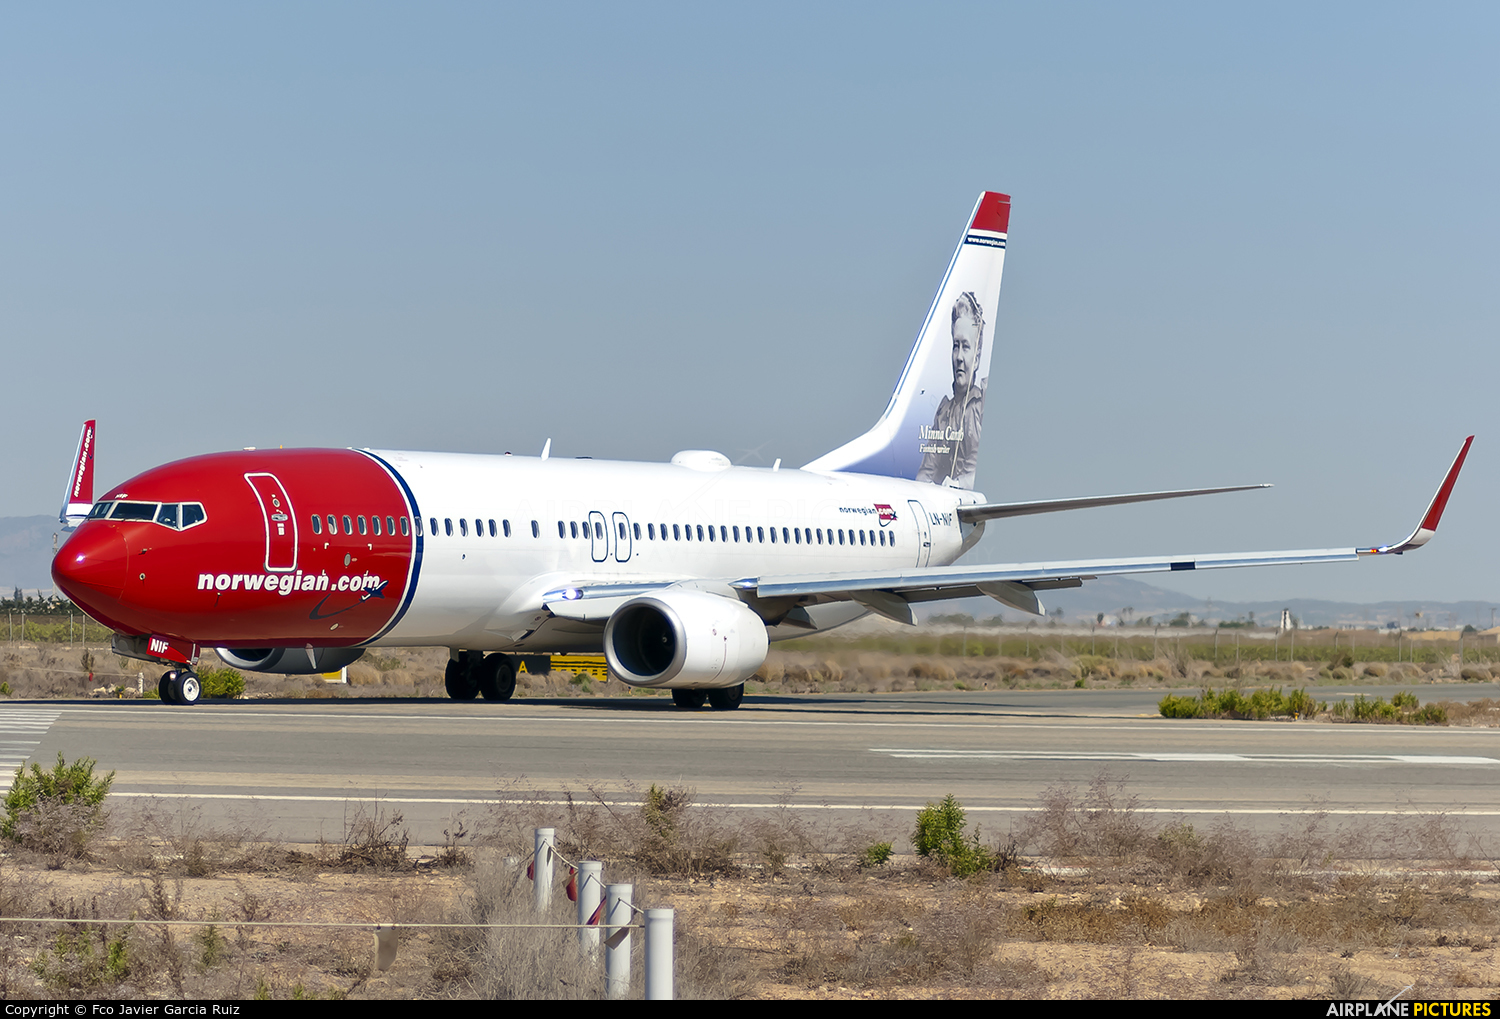 LN-NIF - Norwegian Air Shuttle Boeing 737-800 at Murcia